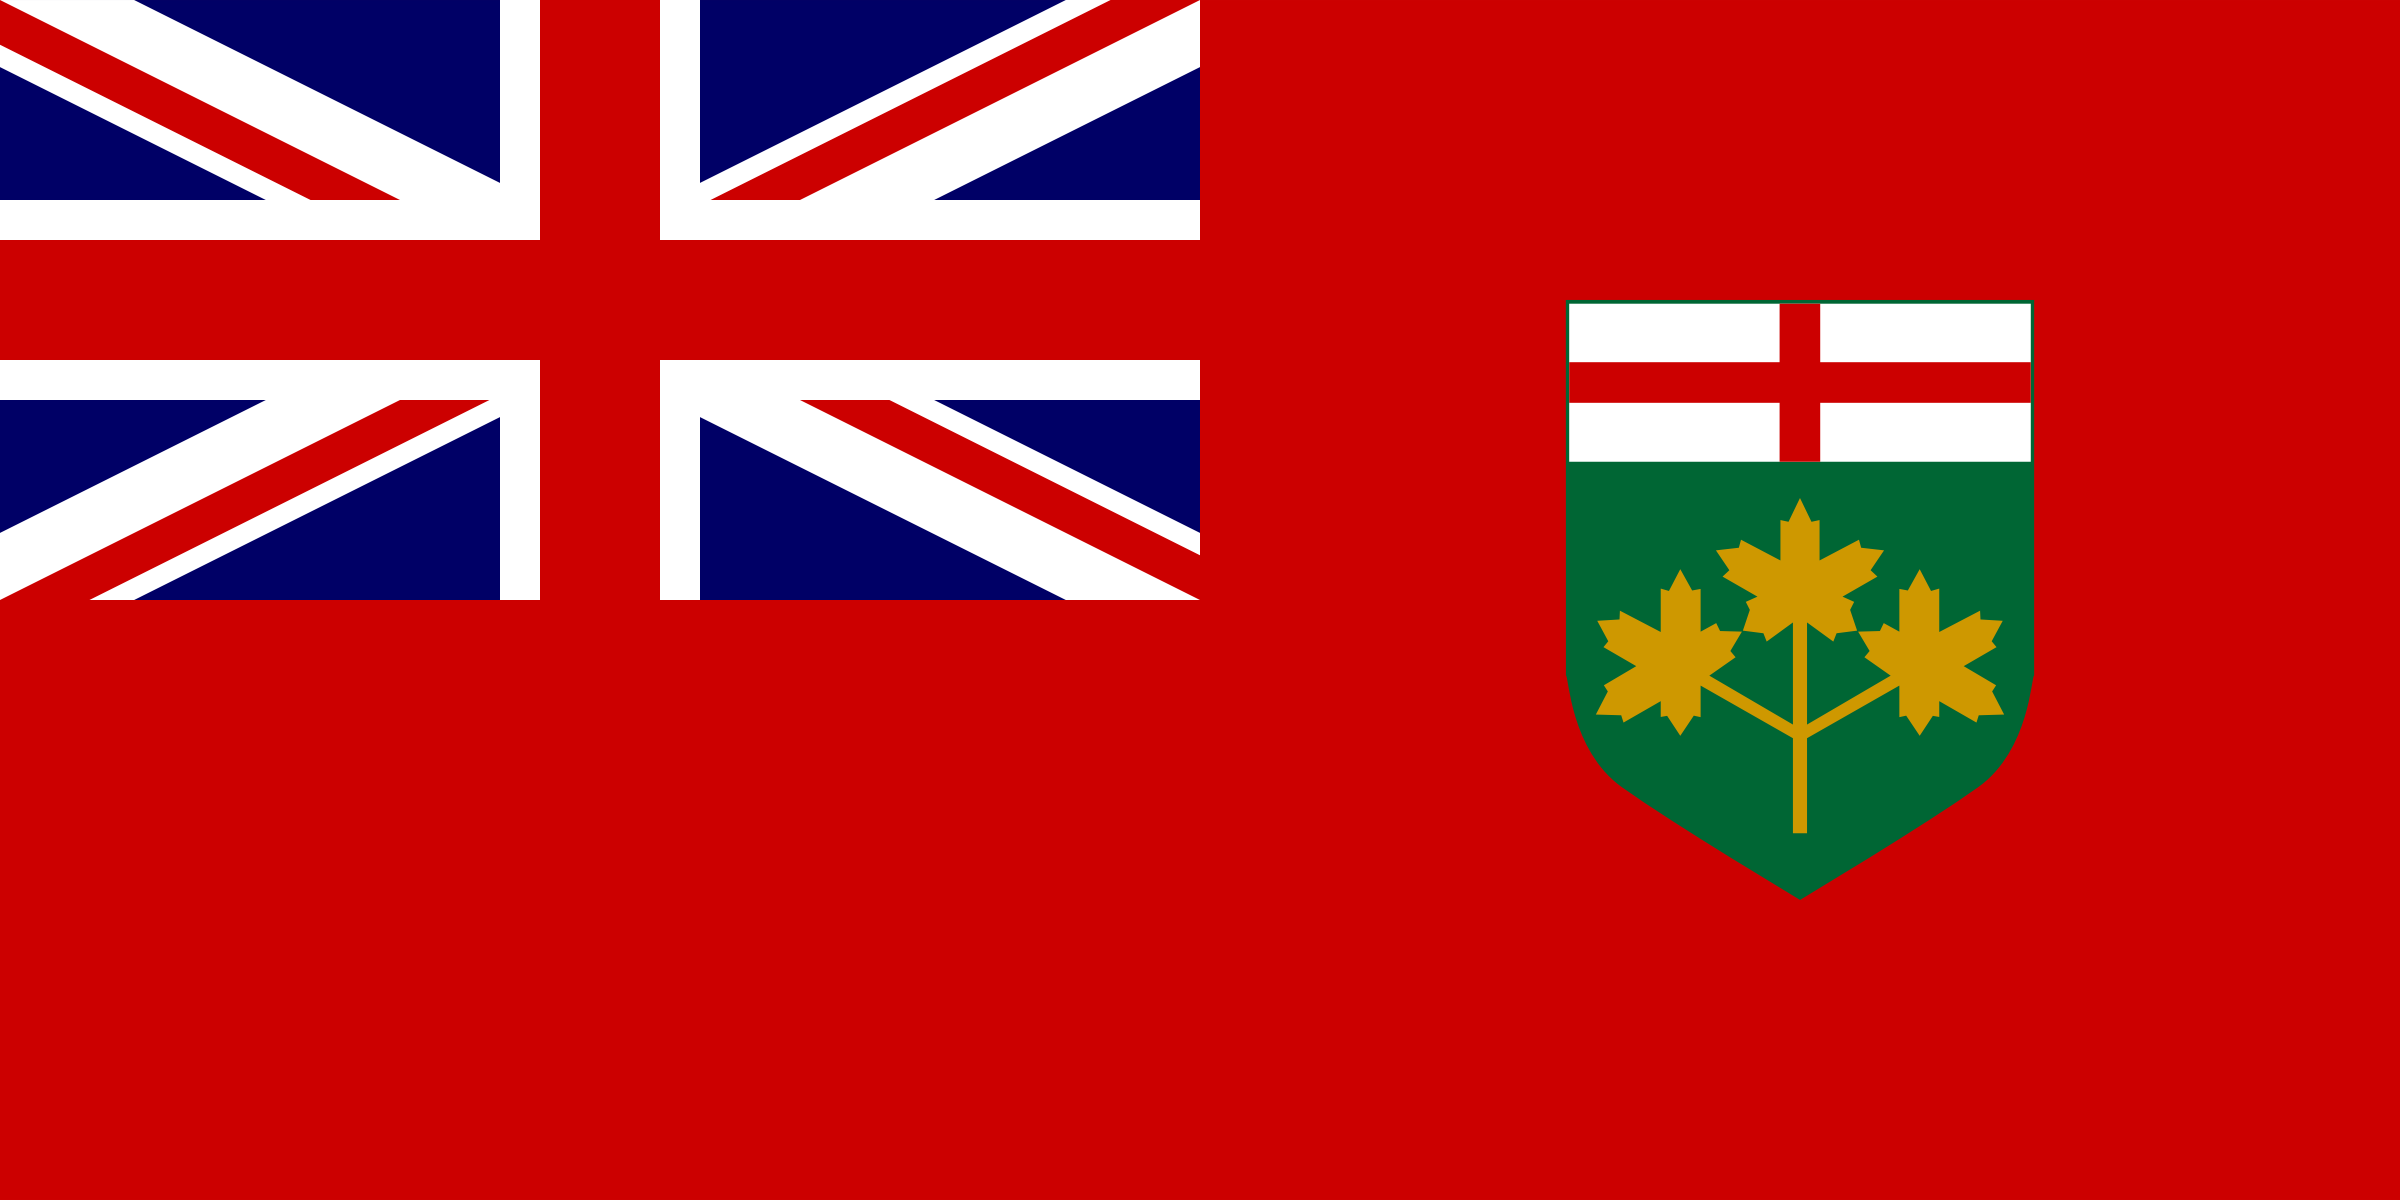 Ontario clipart #14, Download drawings